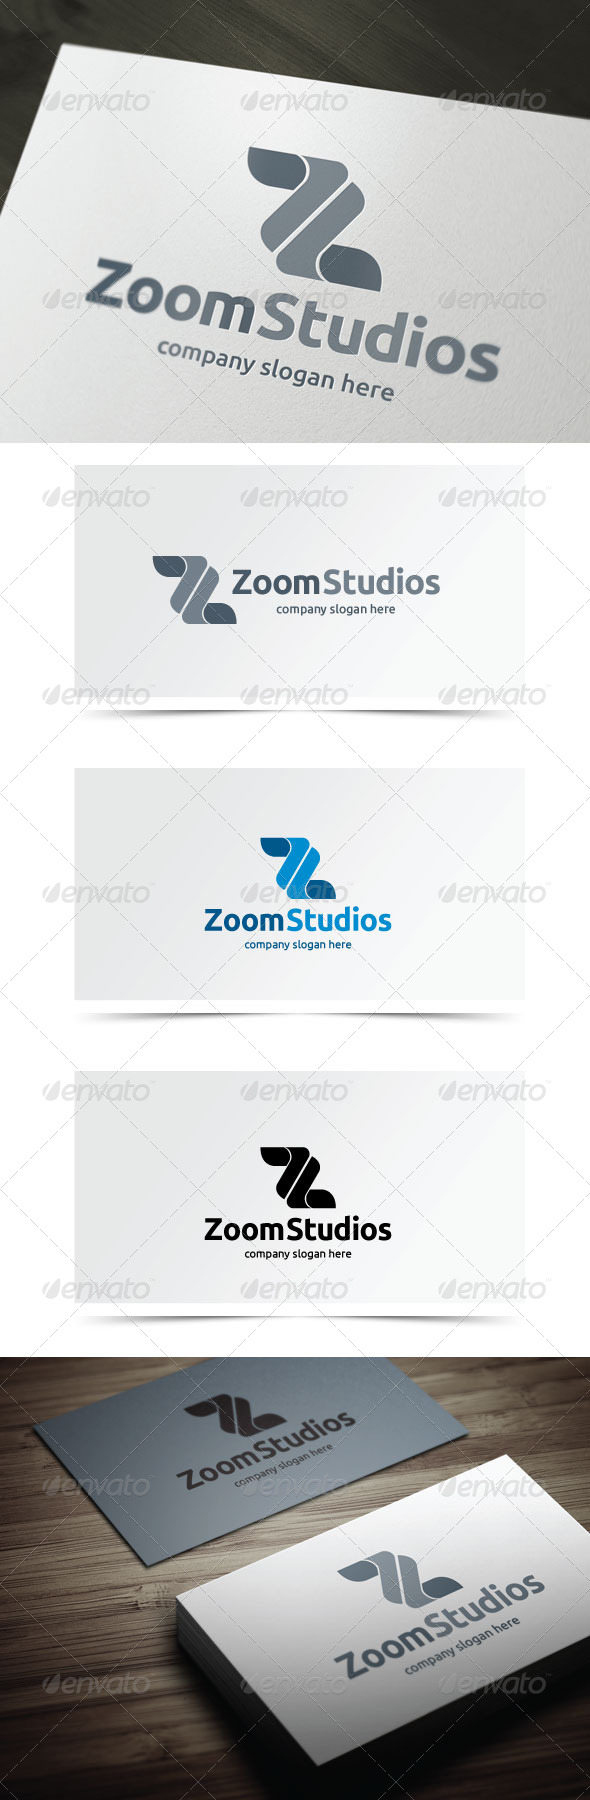 GraphicRiver Zoom Studios 5958766